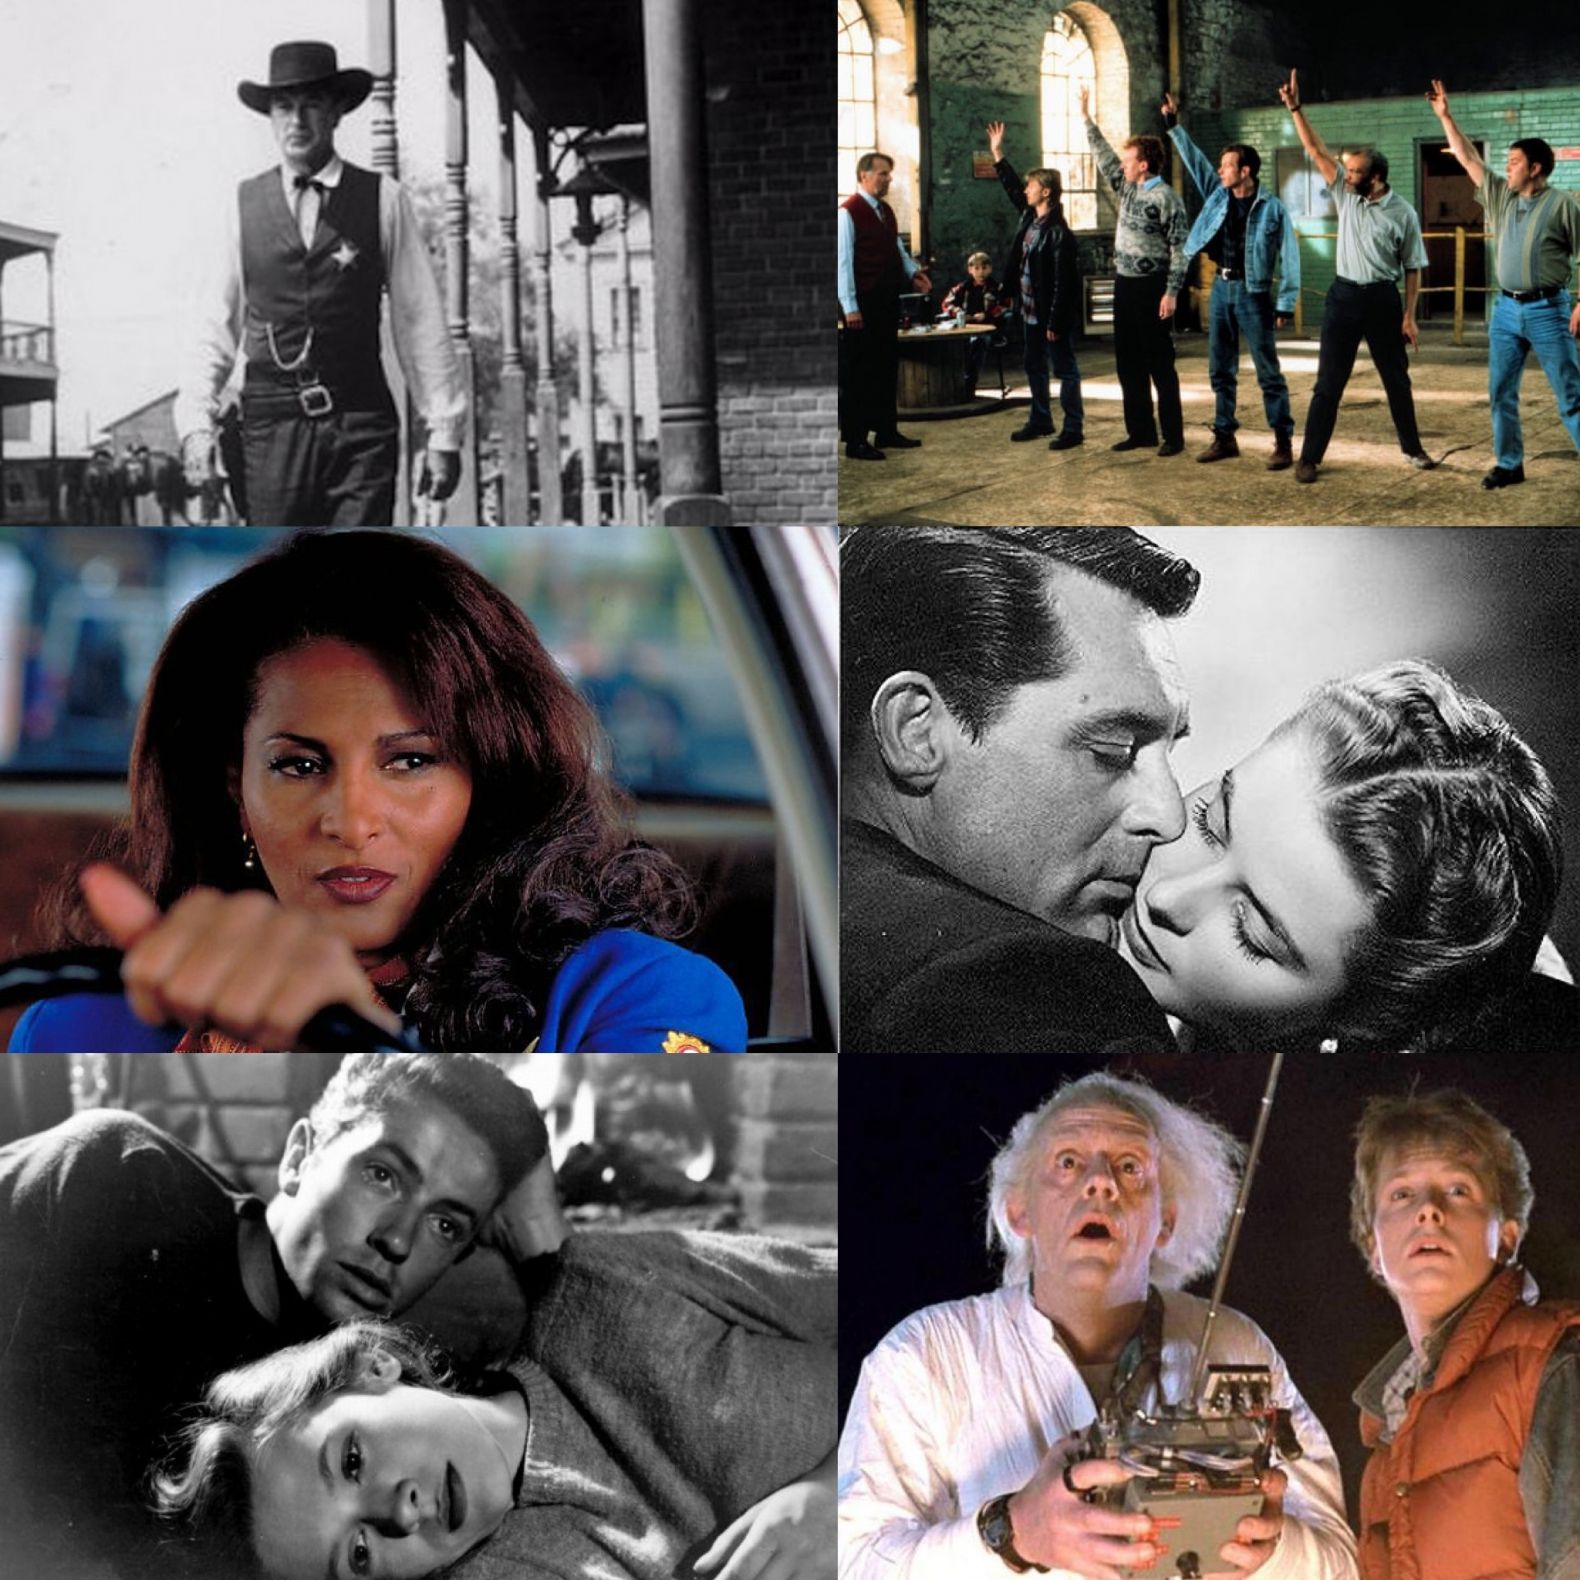 Duke Box #6: Our Guide to the Best Films on TV